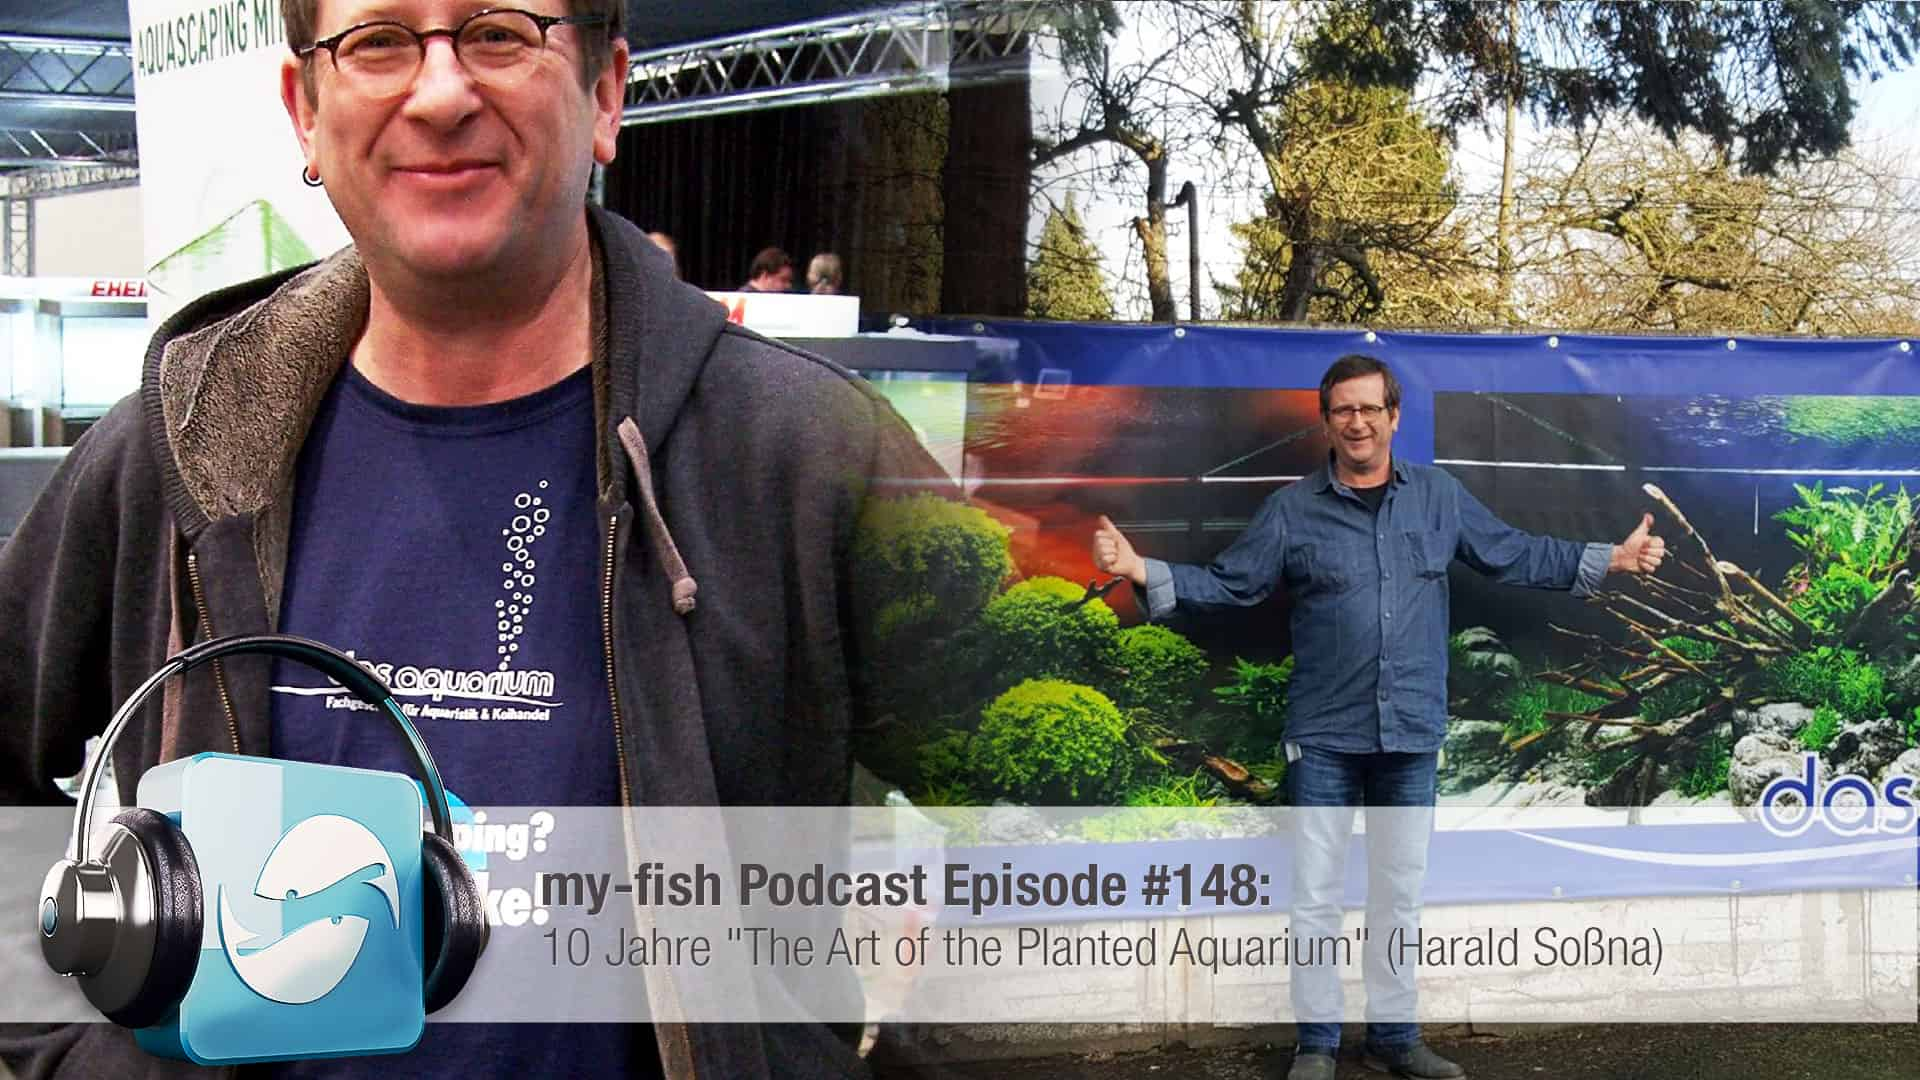 """Podcast Episode #148: 10 Jahre """"The Art of the Planted Aquarium (Harald Soßna) 1"""